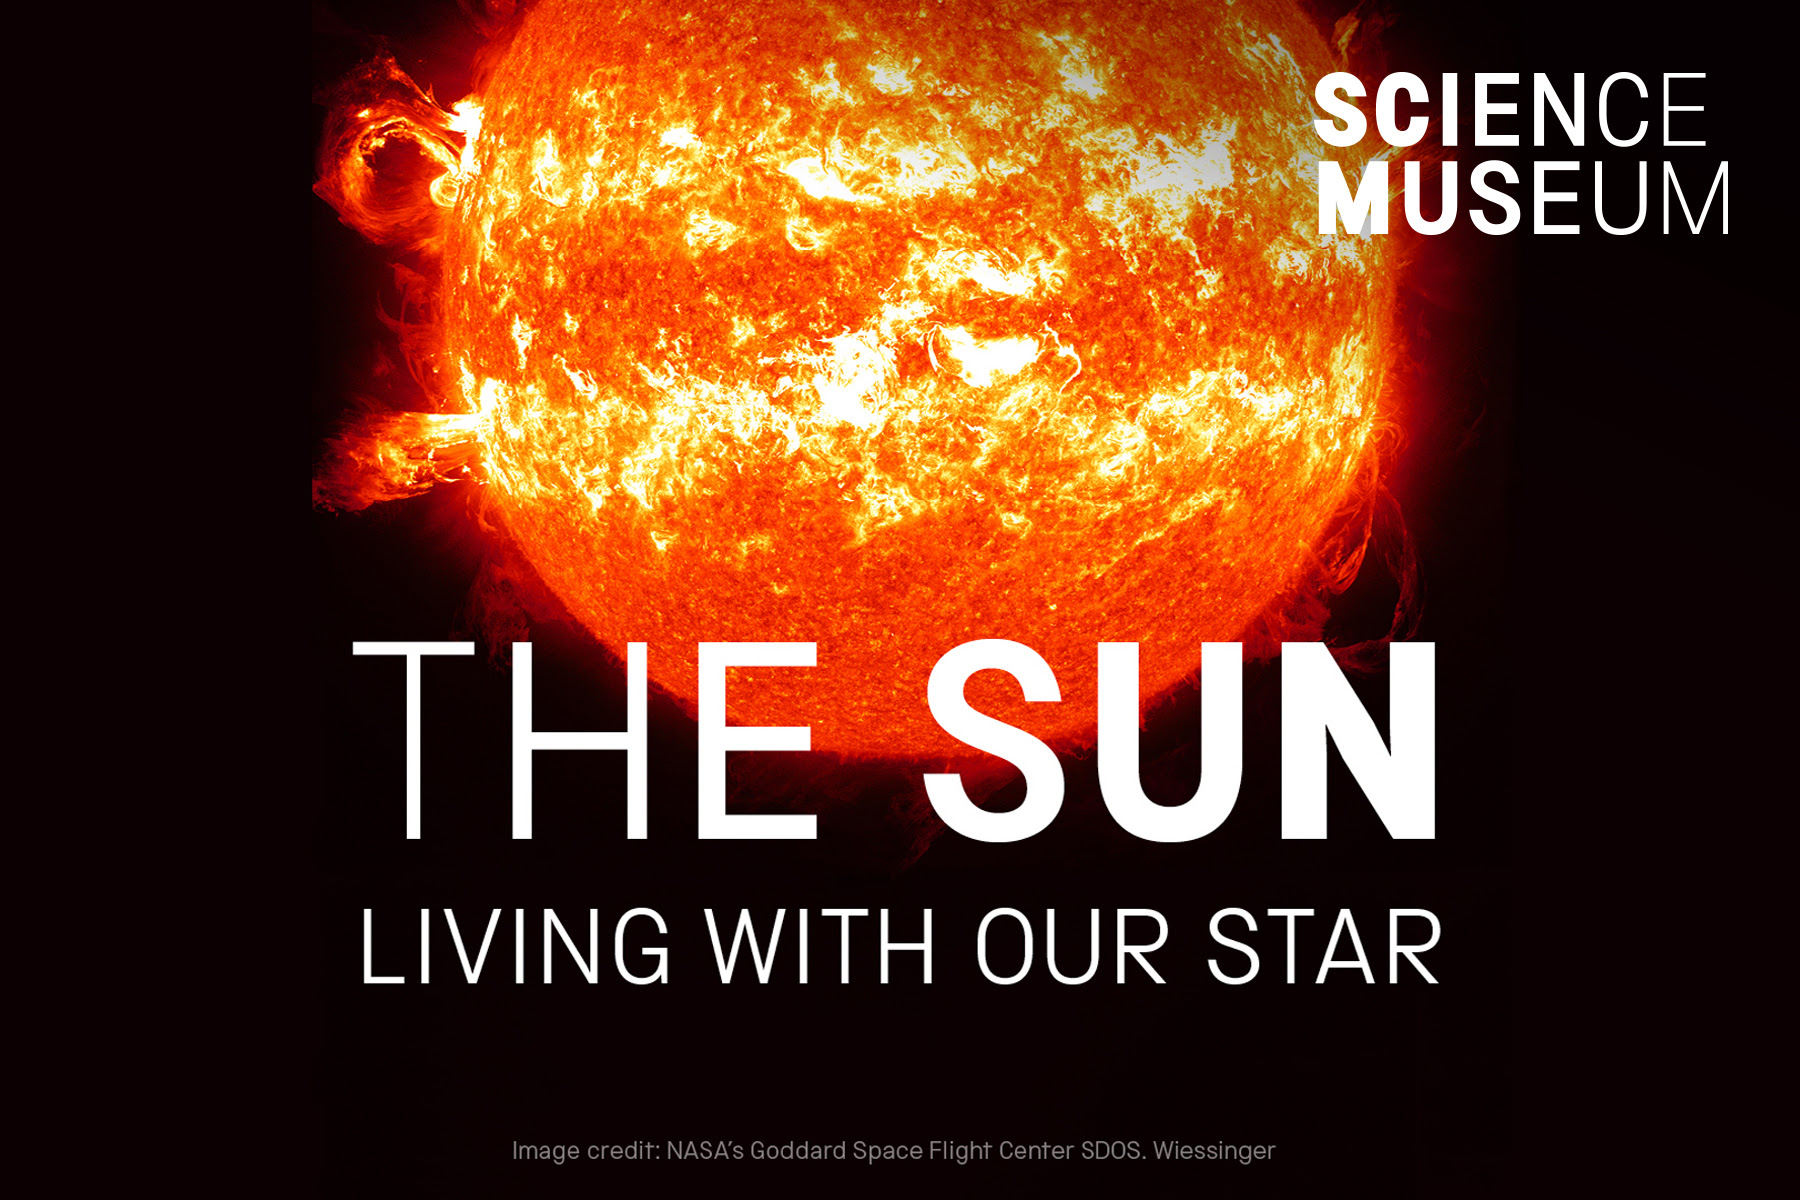 The Sun: Living With Our Star image